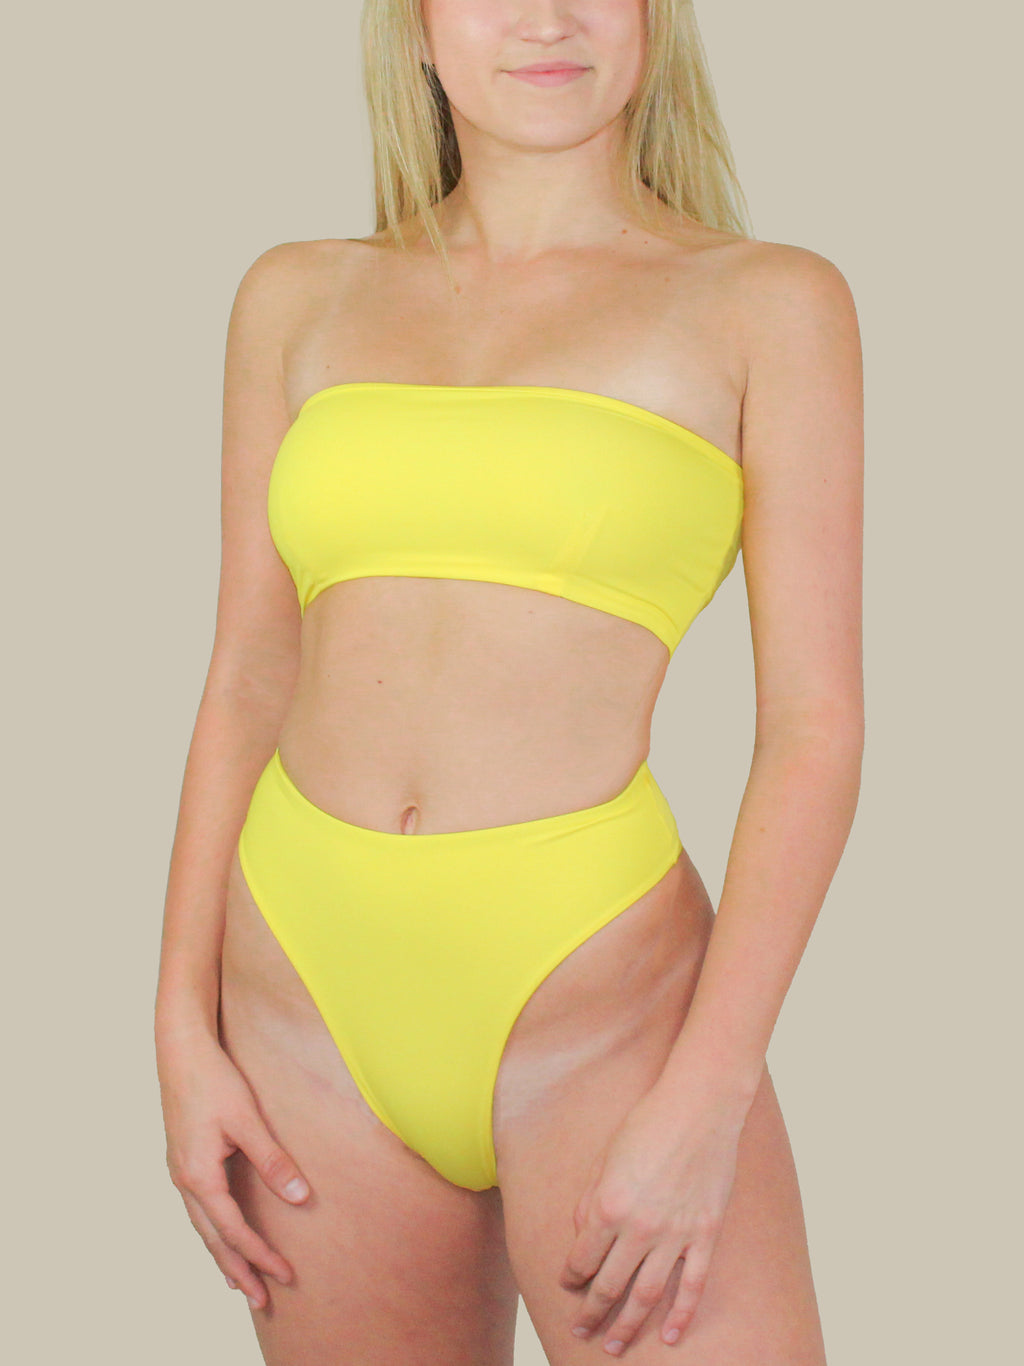 437 Swimwear's The Aubrey Top in Yellow features a strapless top and double layer fabric.